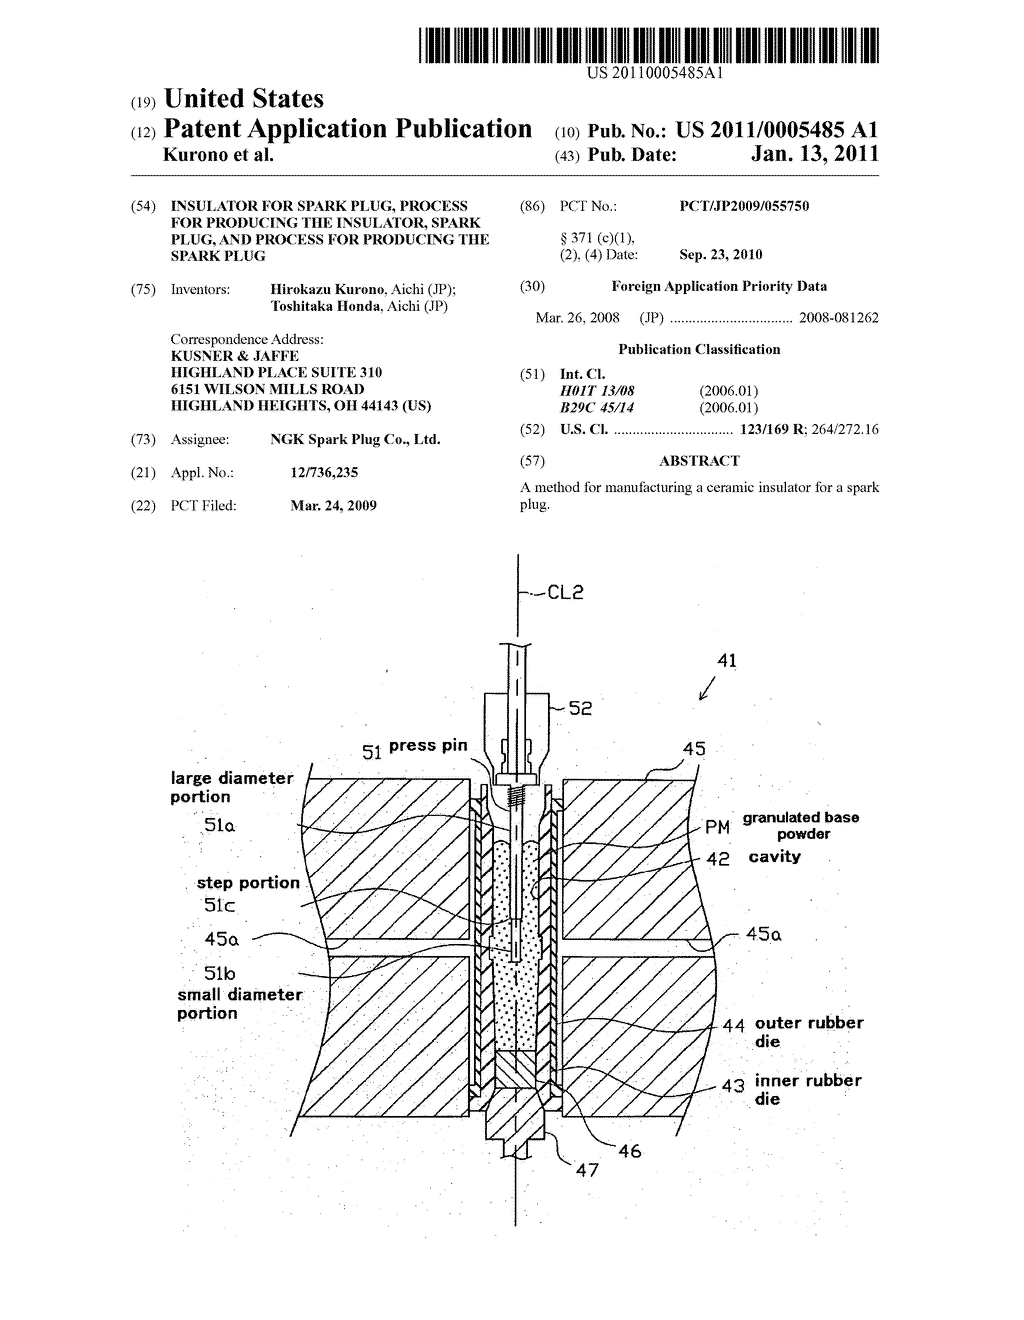 hight resolution of insulator for spark plug process for producing the insulator spark plug and process for producing the spark plug diagram schematic and image 01